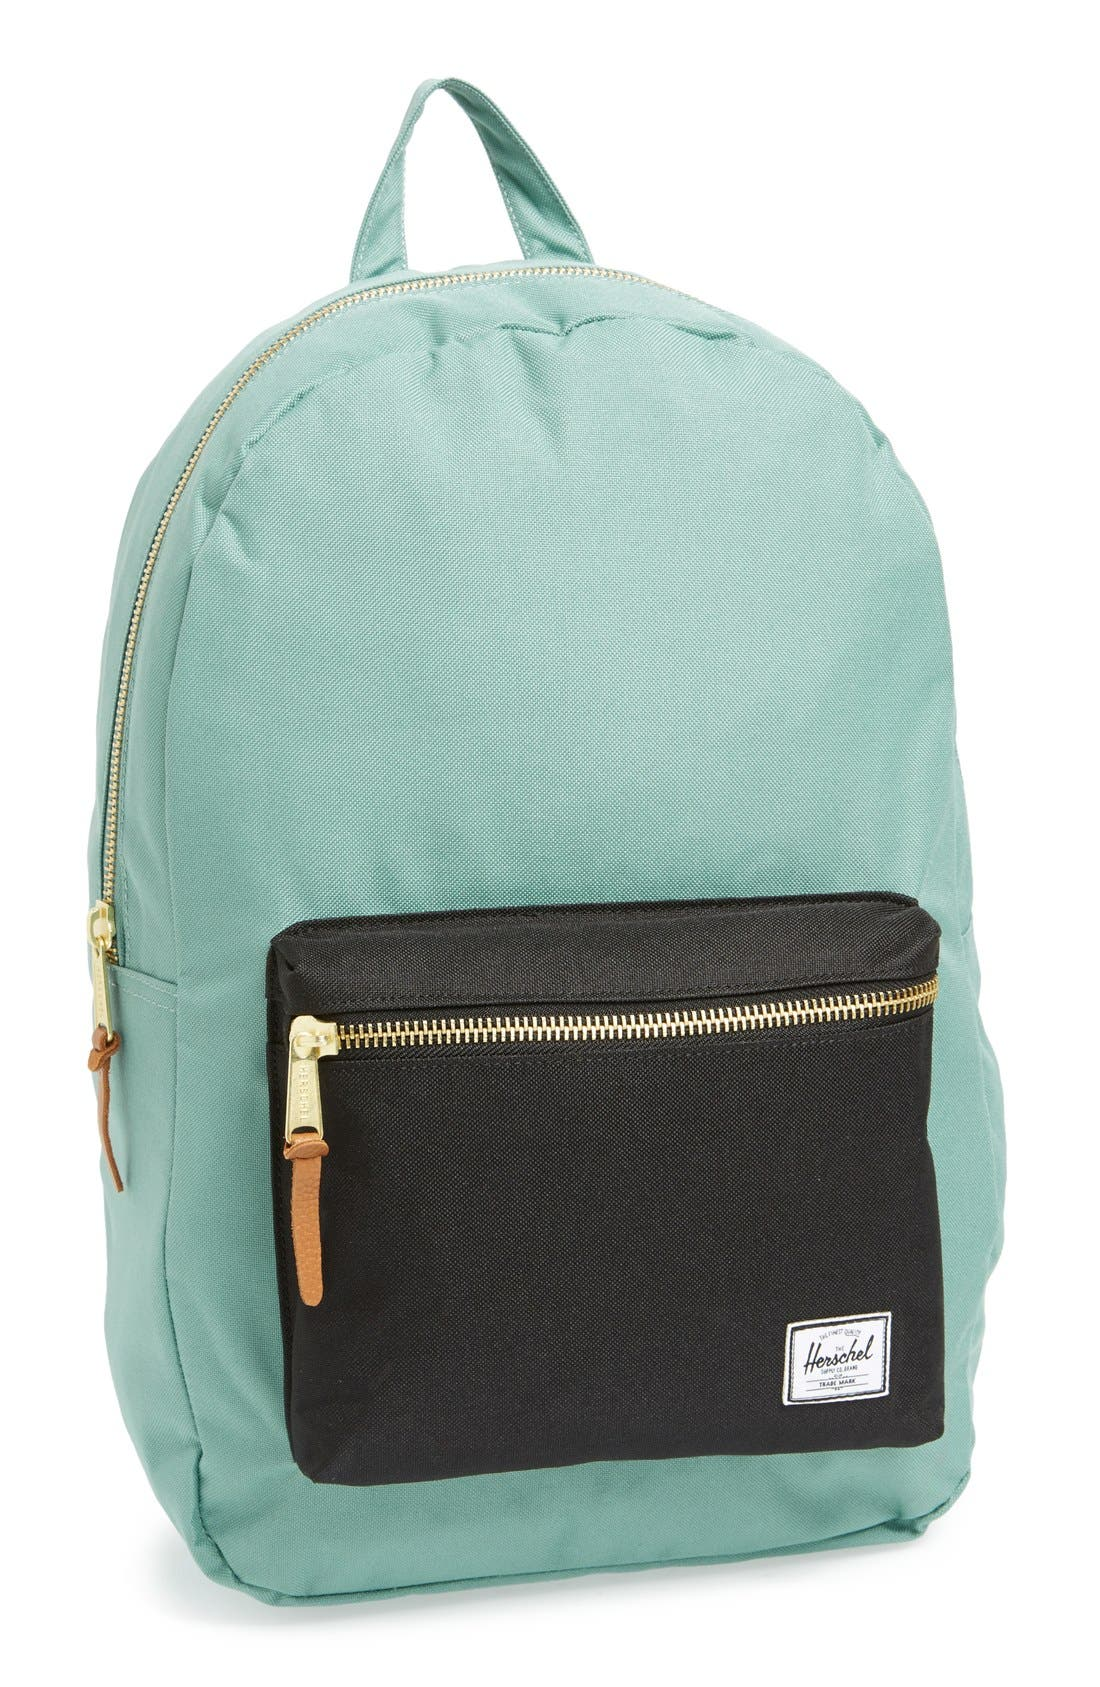 HERSCHEL SUPPLY CO., 'Settlement' Backpack, Main thumbnail 1, color, 340